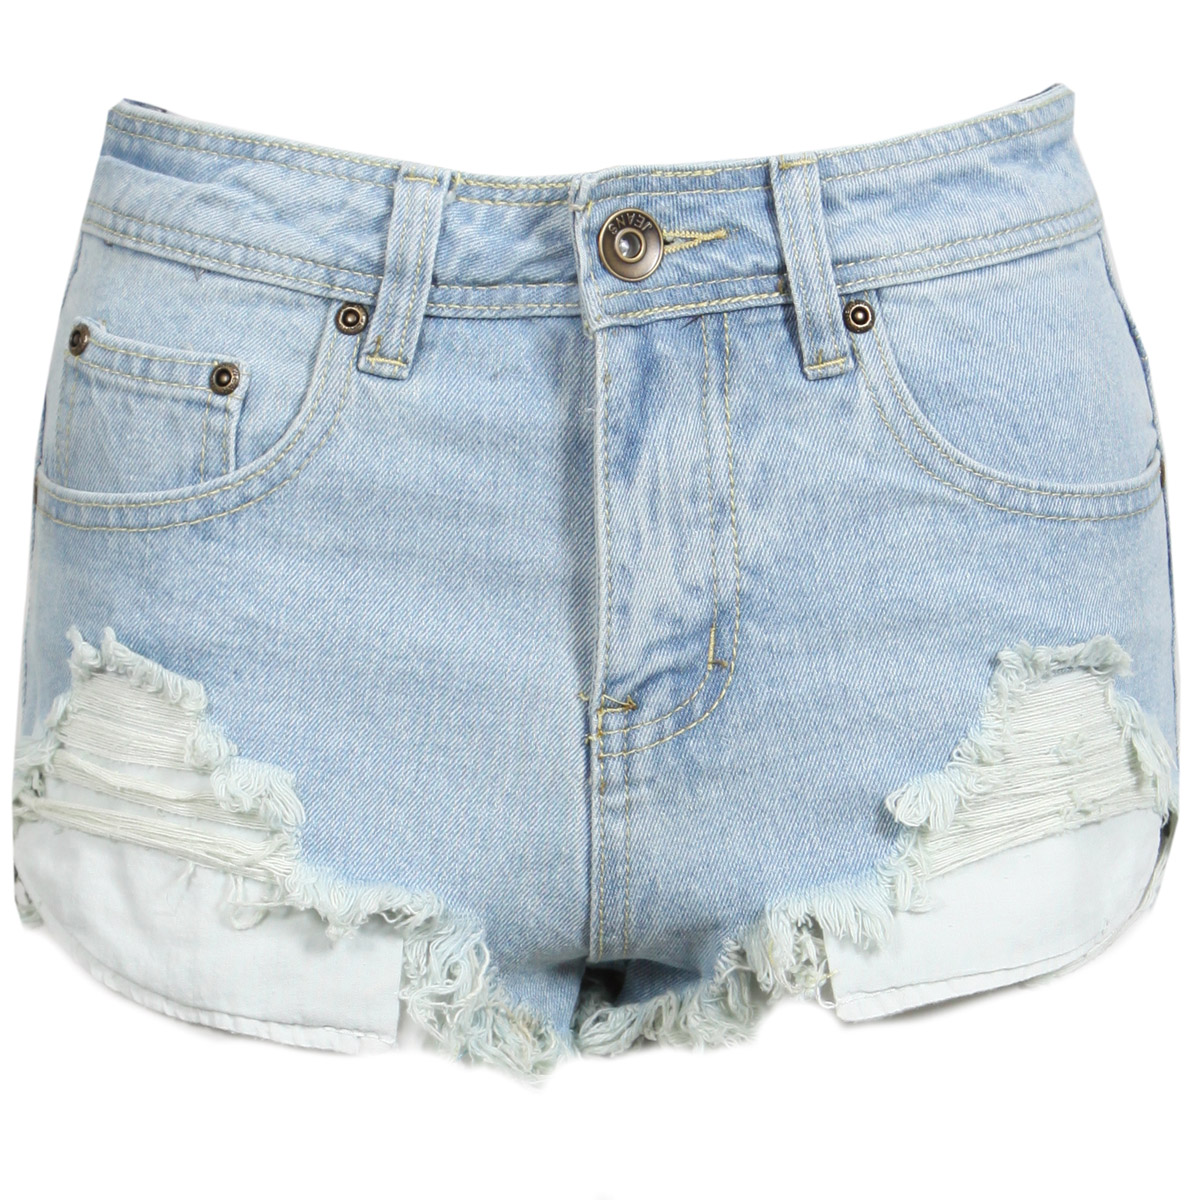 NEW WOMENS LIGHT BLUE DENIM DISTRESSED SHORTS HOT PANTS FRAYED HEM LADIES 6-14 Enlarged Preview